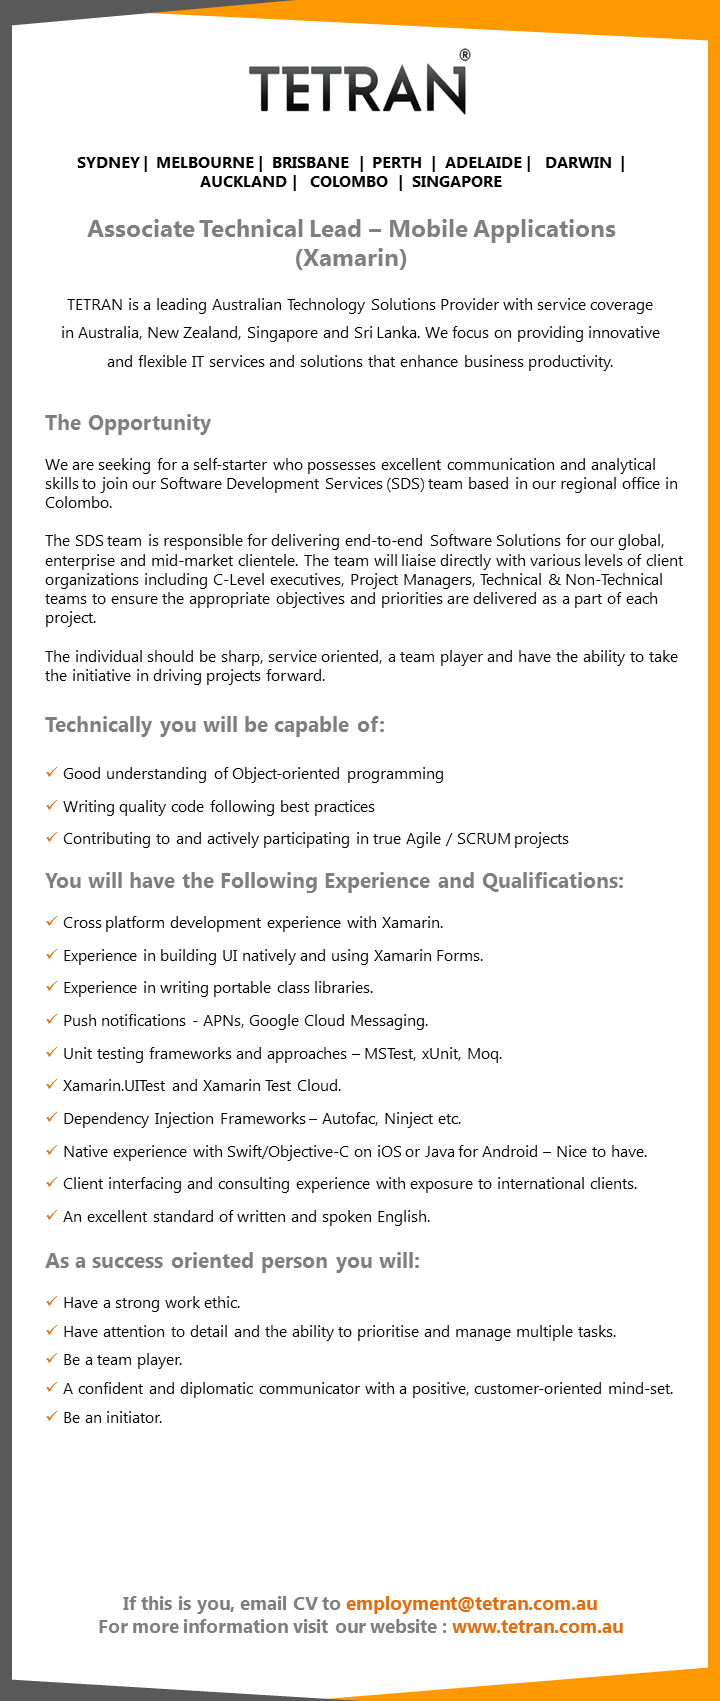 associate technical lead mobile applications xamarin job associate technical lead we are seeking for a self starter who possesses excellent communication and analytical skills to join our software development